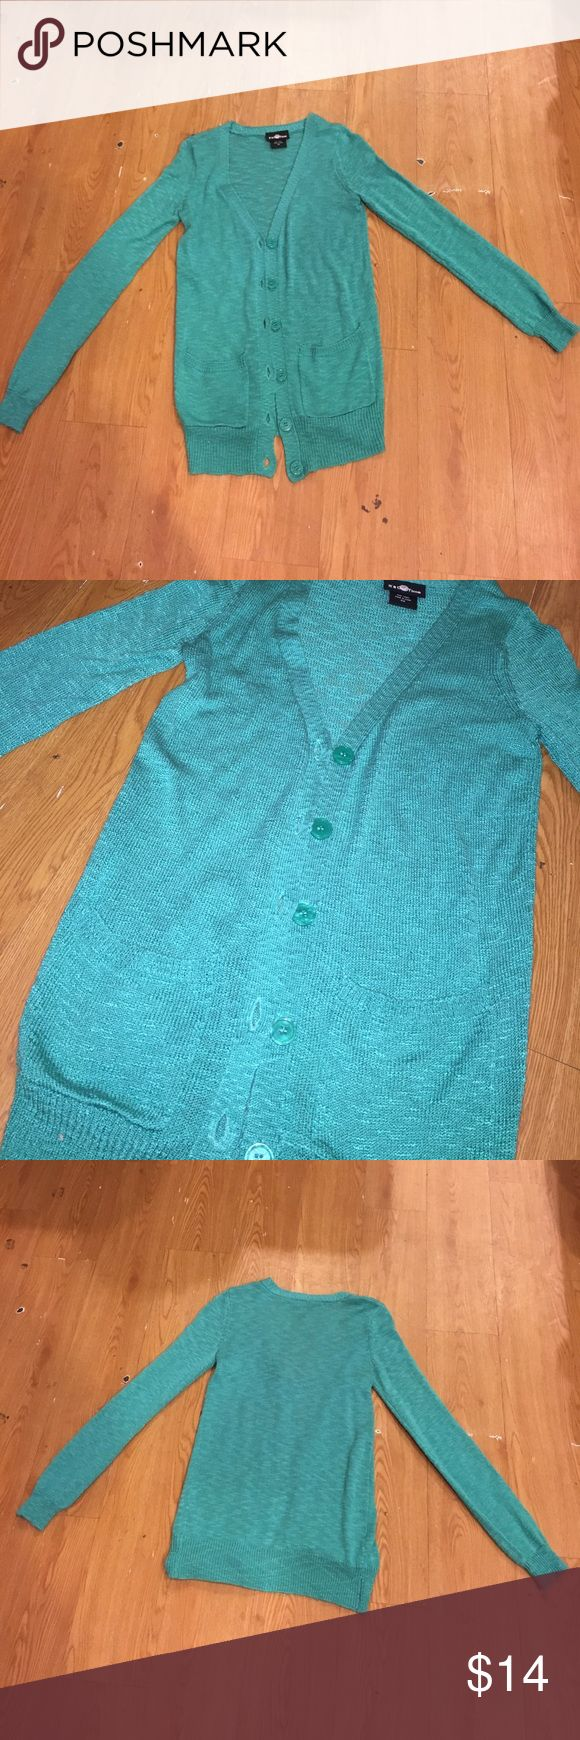 Teal Cardigan Teal Cardigan It's Our Time Sweaters Cardigans